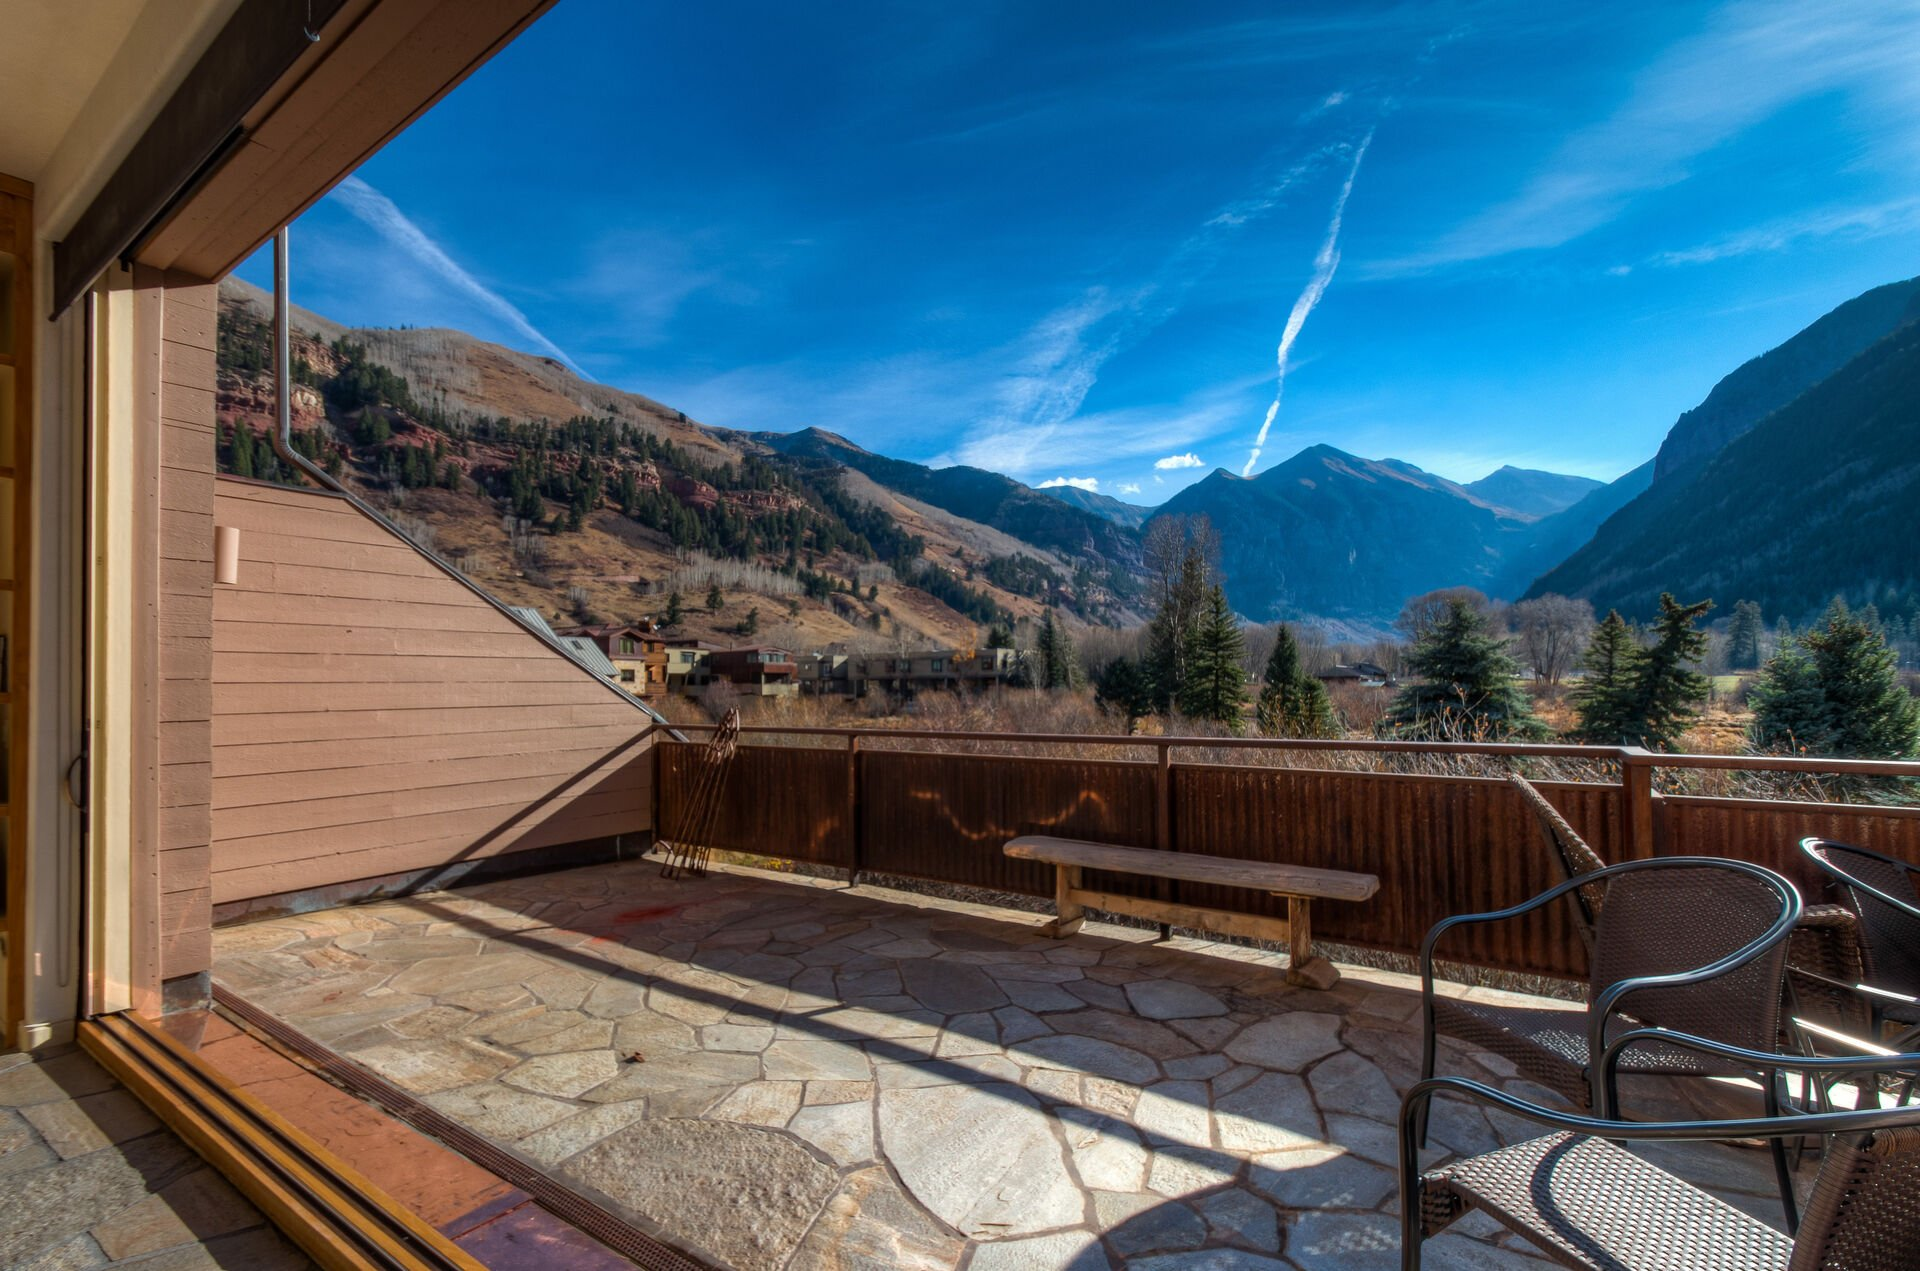 The balcony of this Colorado Mountain vacation rental, with chairs and a small bench.